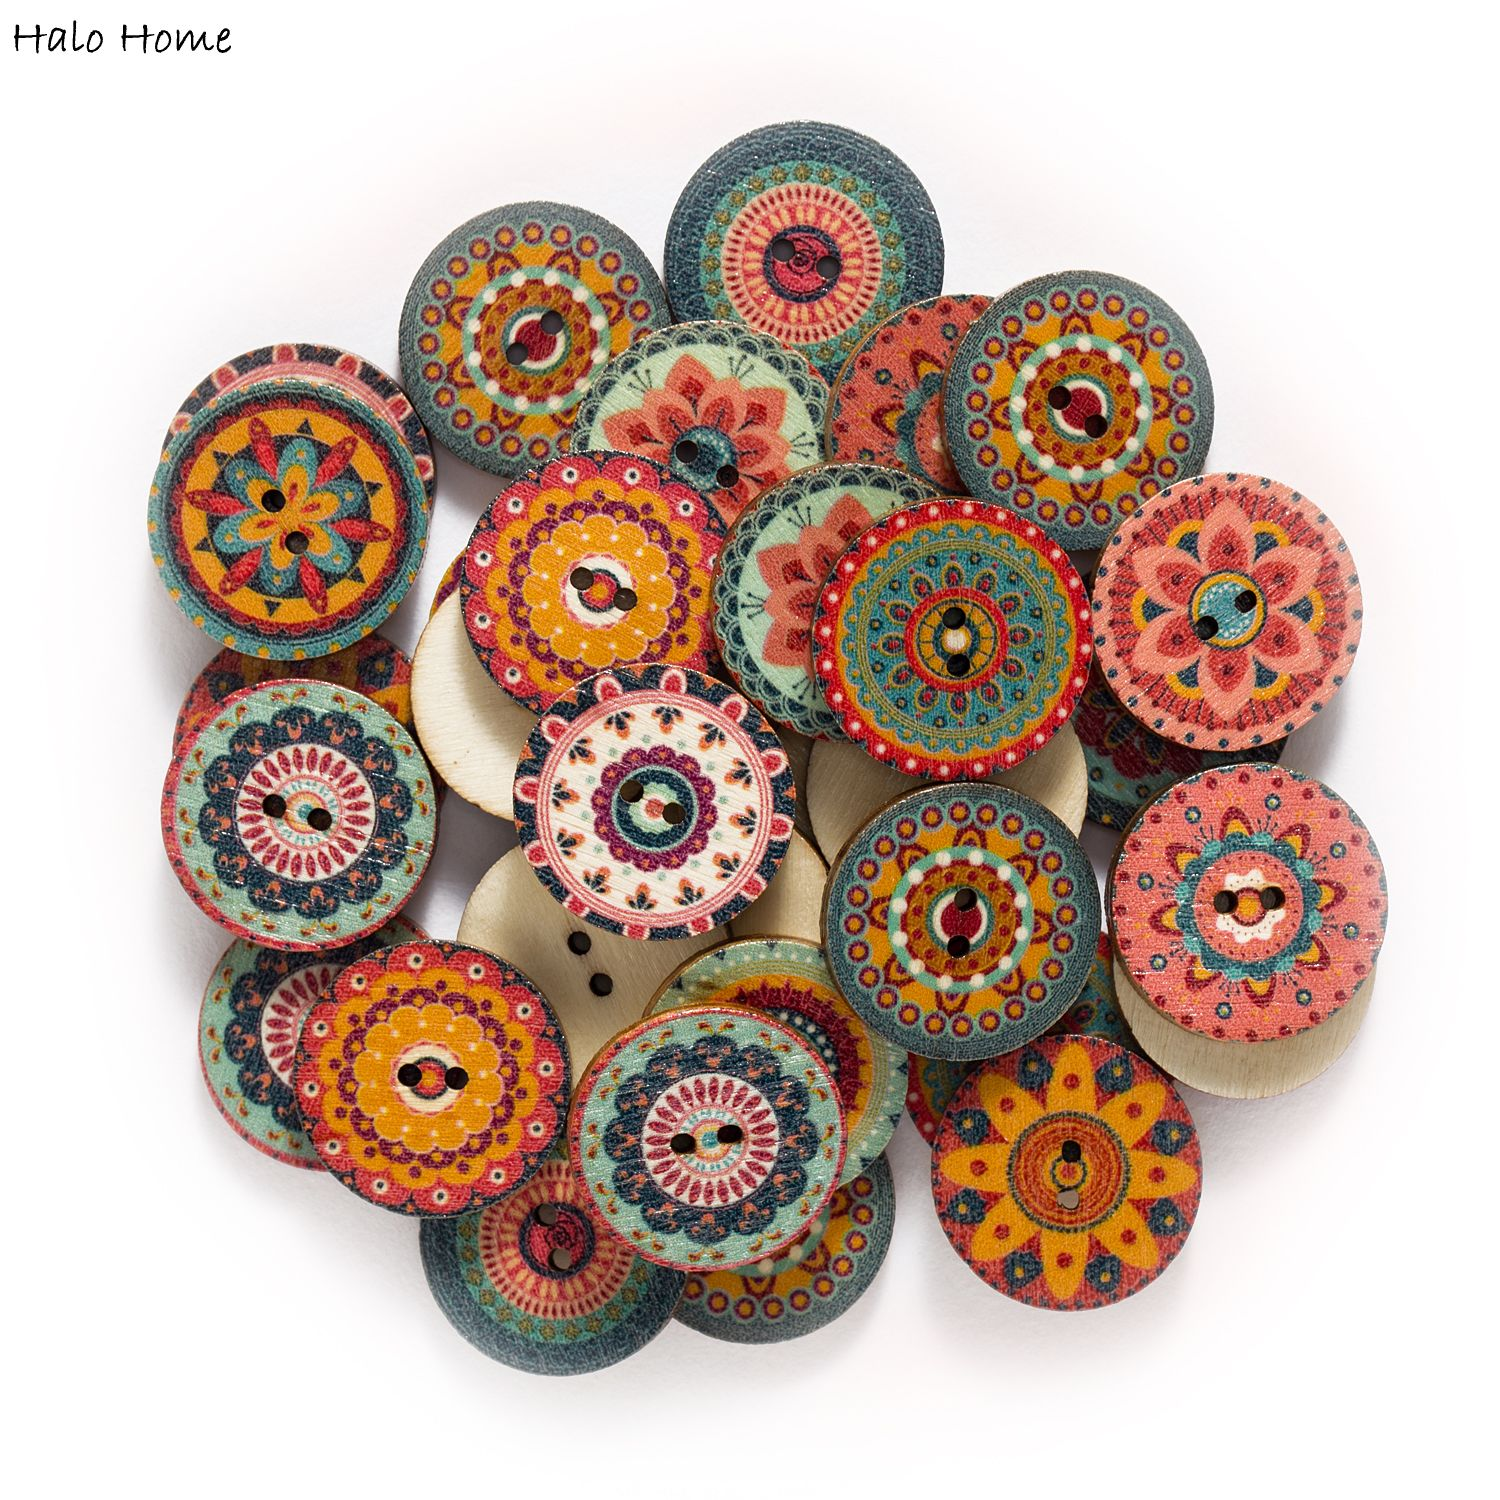 Glorious 50pcs Retro Series Wood Buttons For Handwork Sewing Scrapbook Clothing Crafts Accessories Gift Card Decor 15-25mm